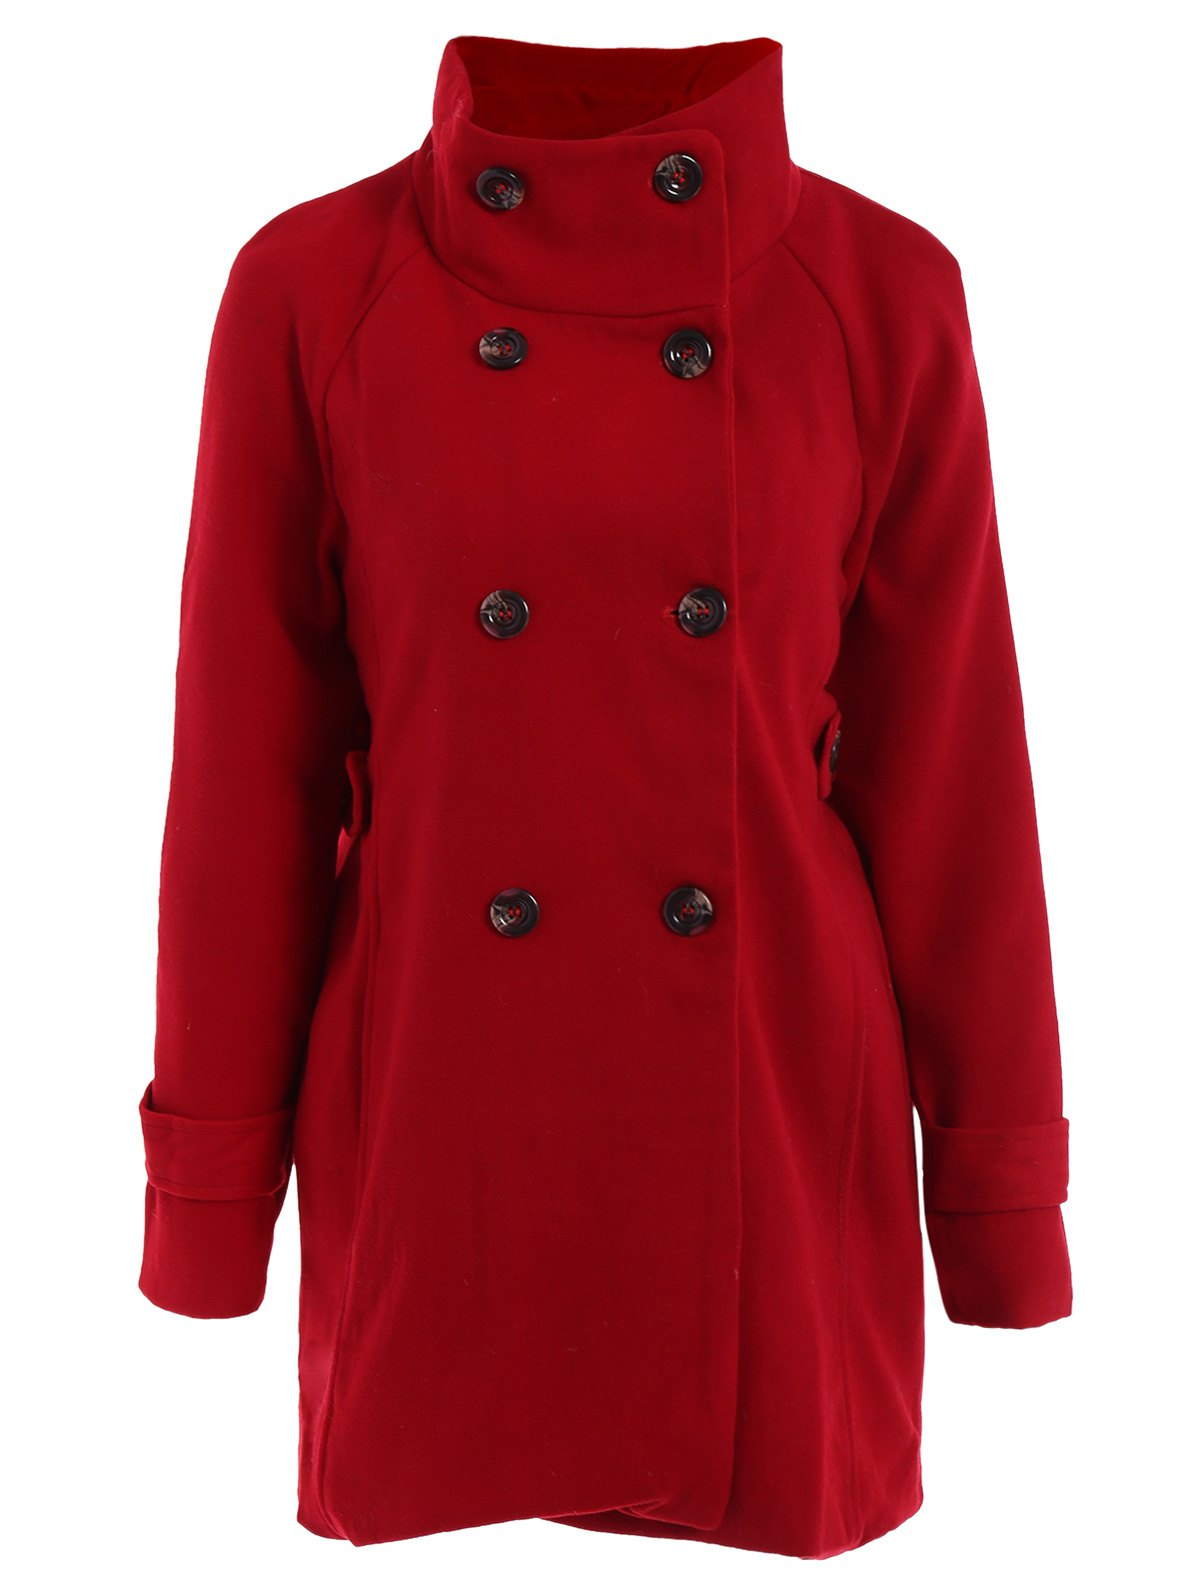 Stylish Women's Turn-Down Collar Long Sleeve Red Worsted Coat - S RED